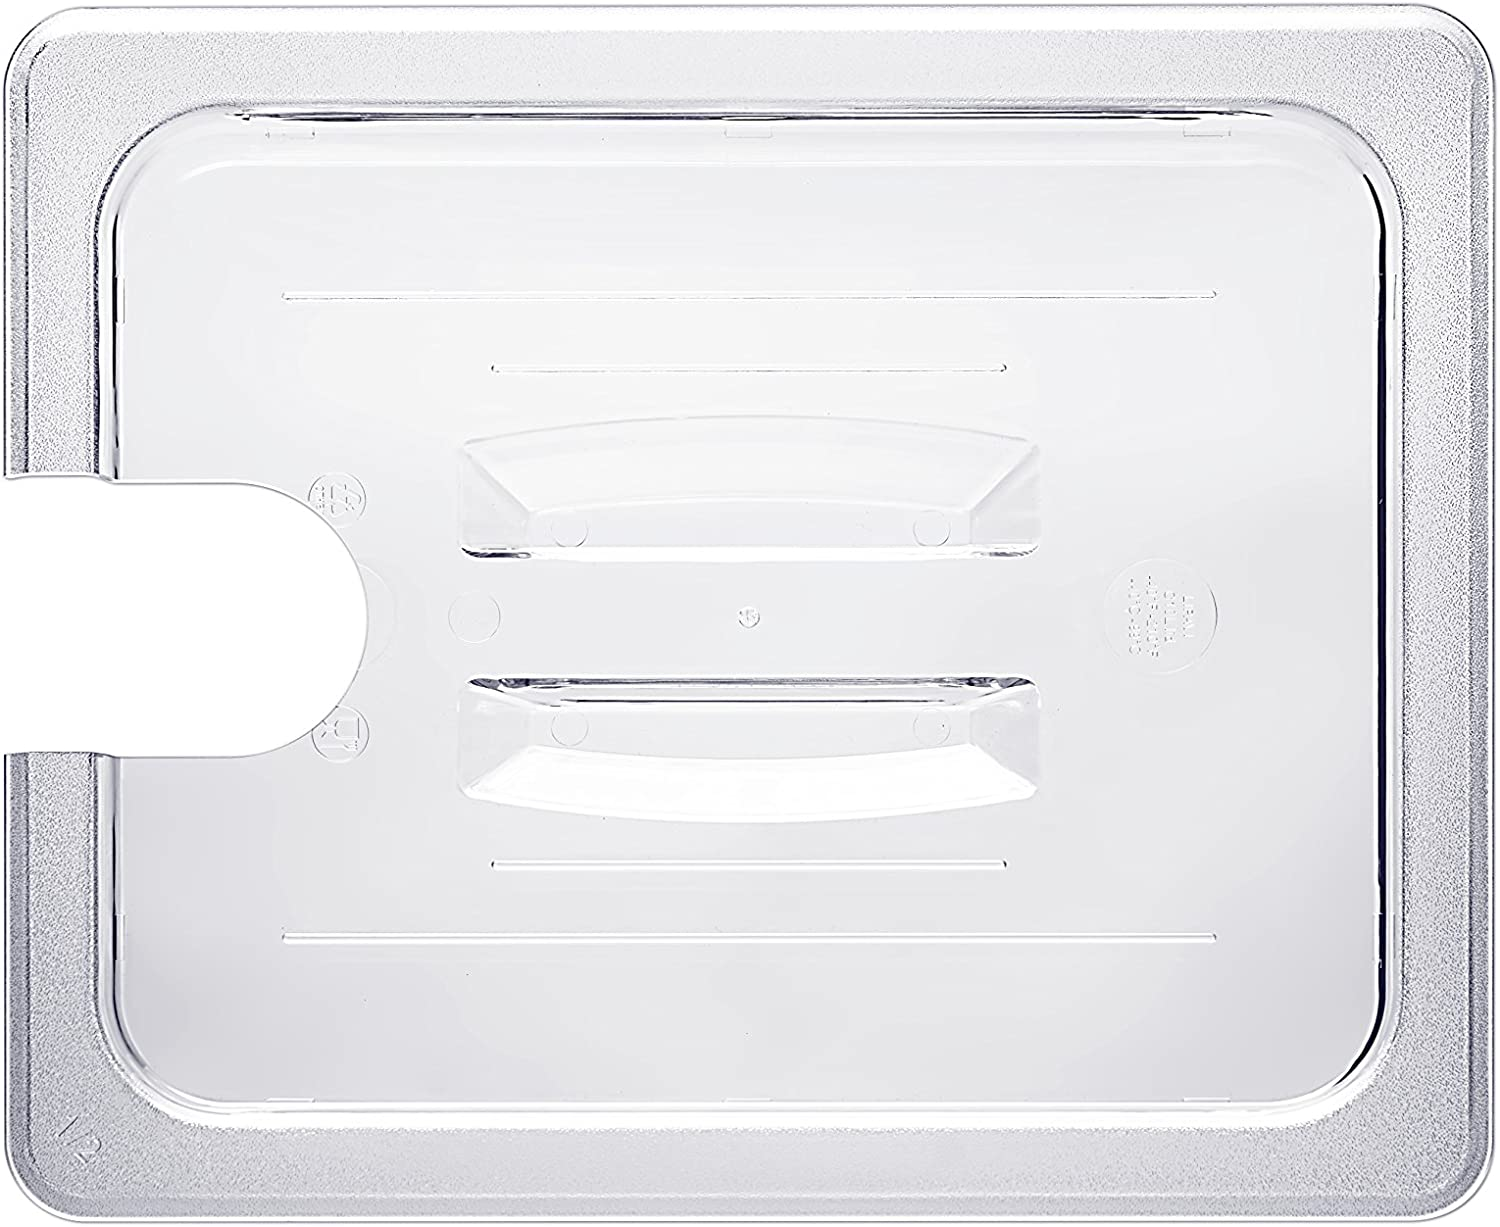 C10L-NOW Lid tailored for Nomiku WiFi circulator with LIPAVI Sous Vide Container C10